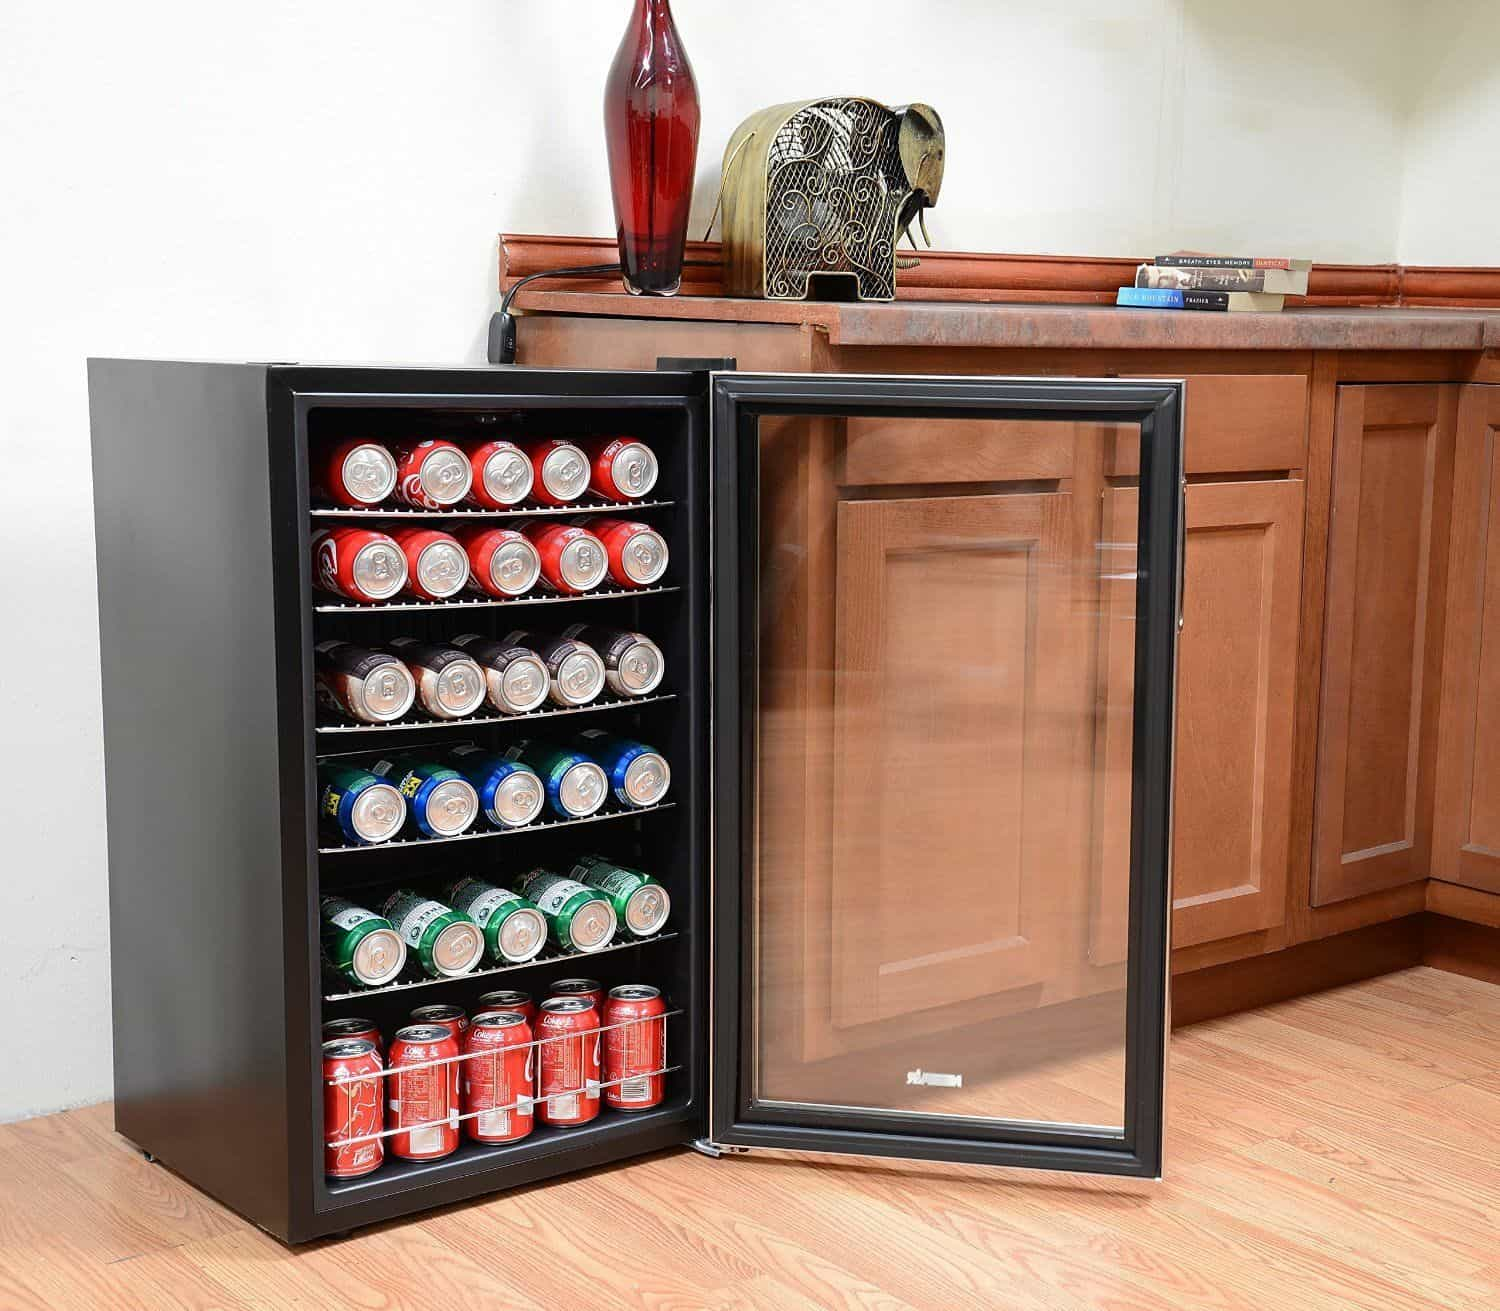 Kuche Bar Fridge Review The Best Beverage Cooler And Refrigerator Reviews Home